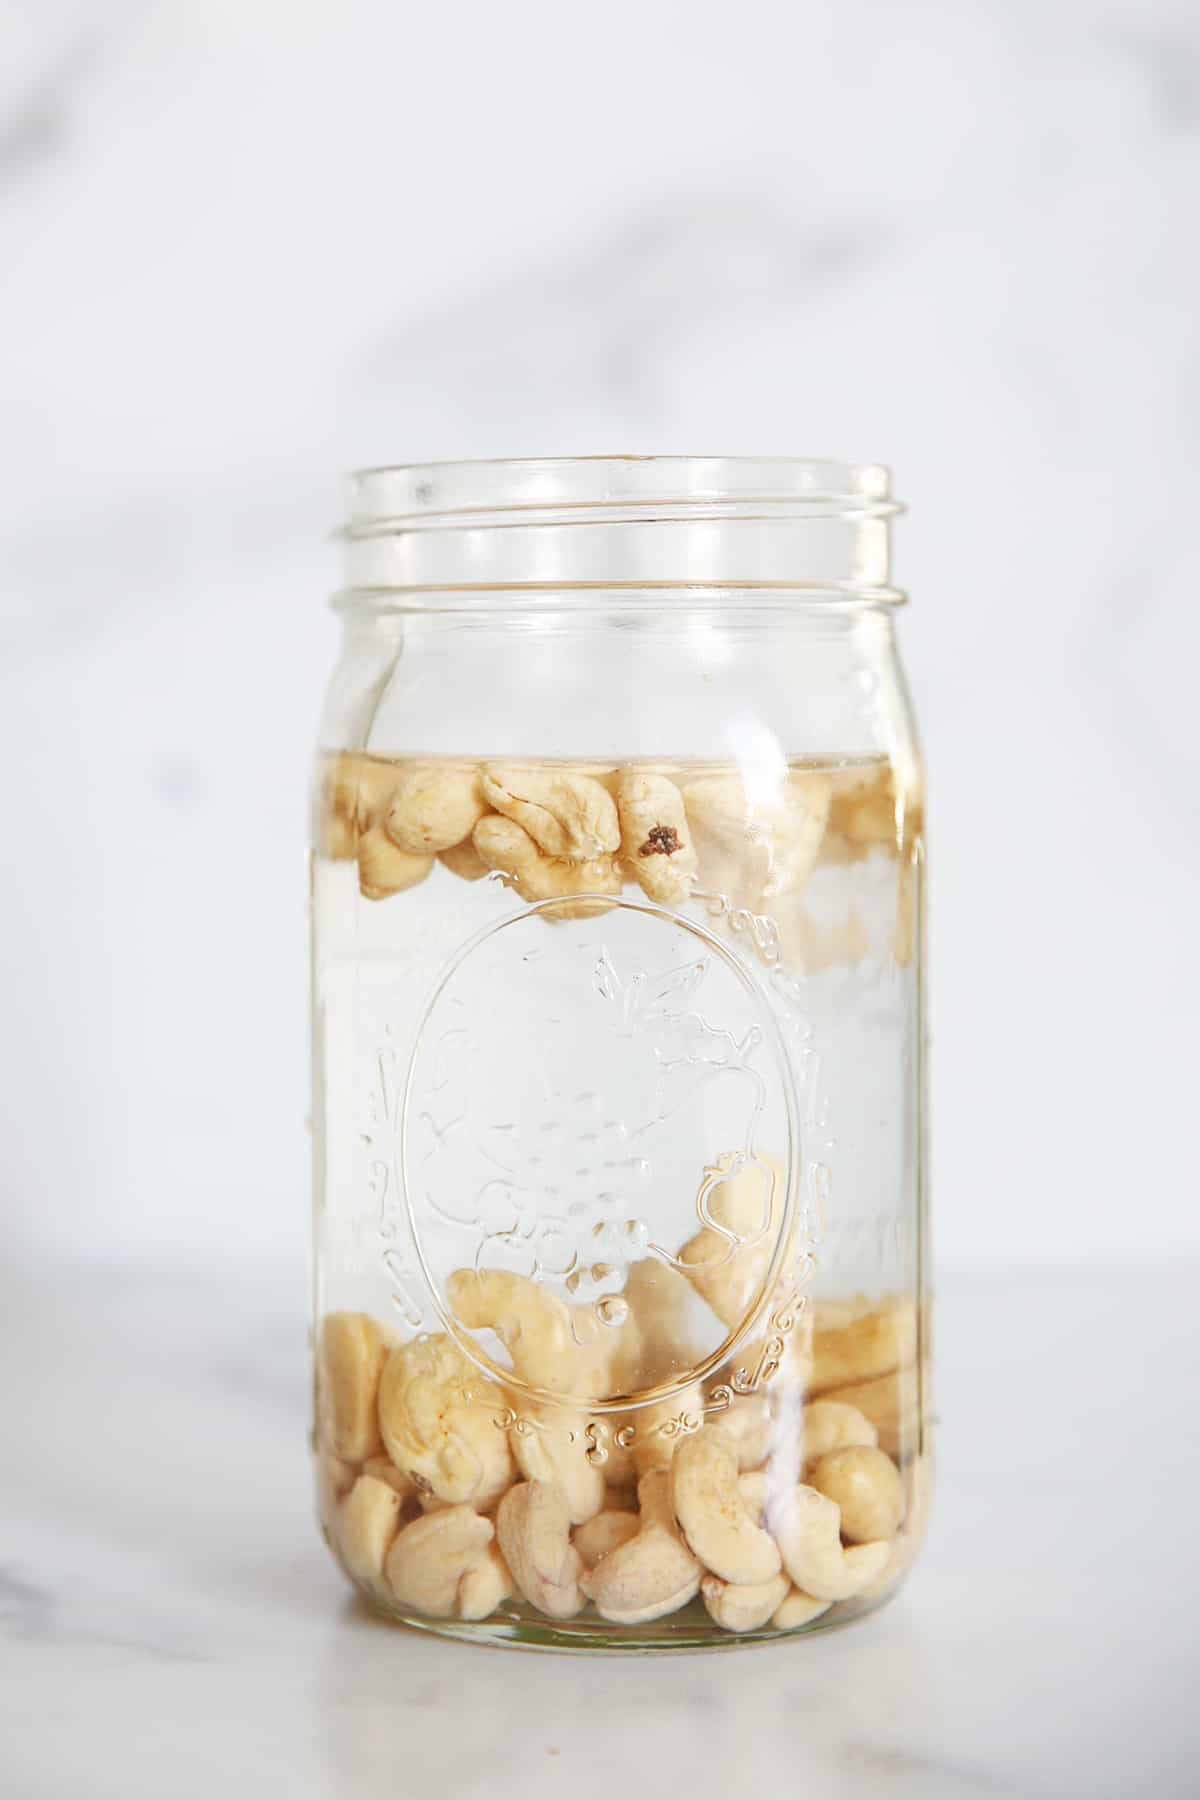 soaking cashews in a jar